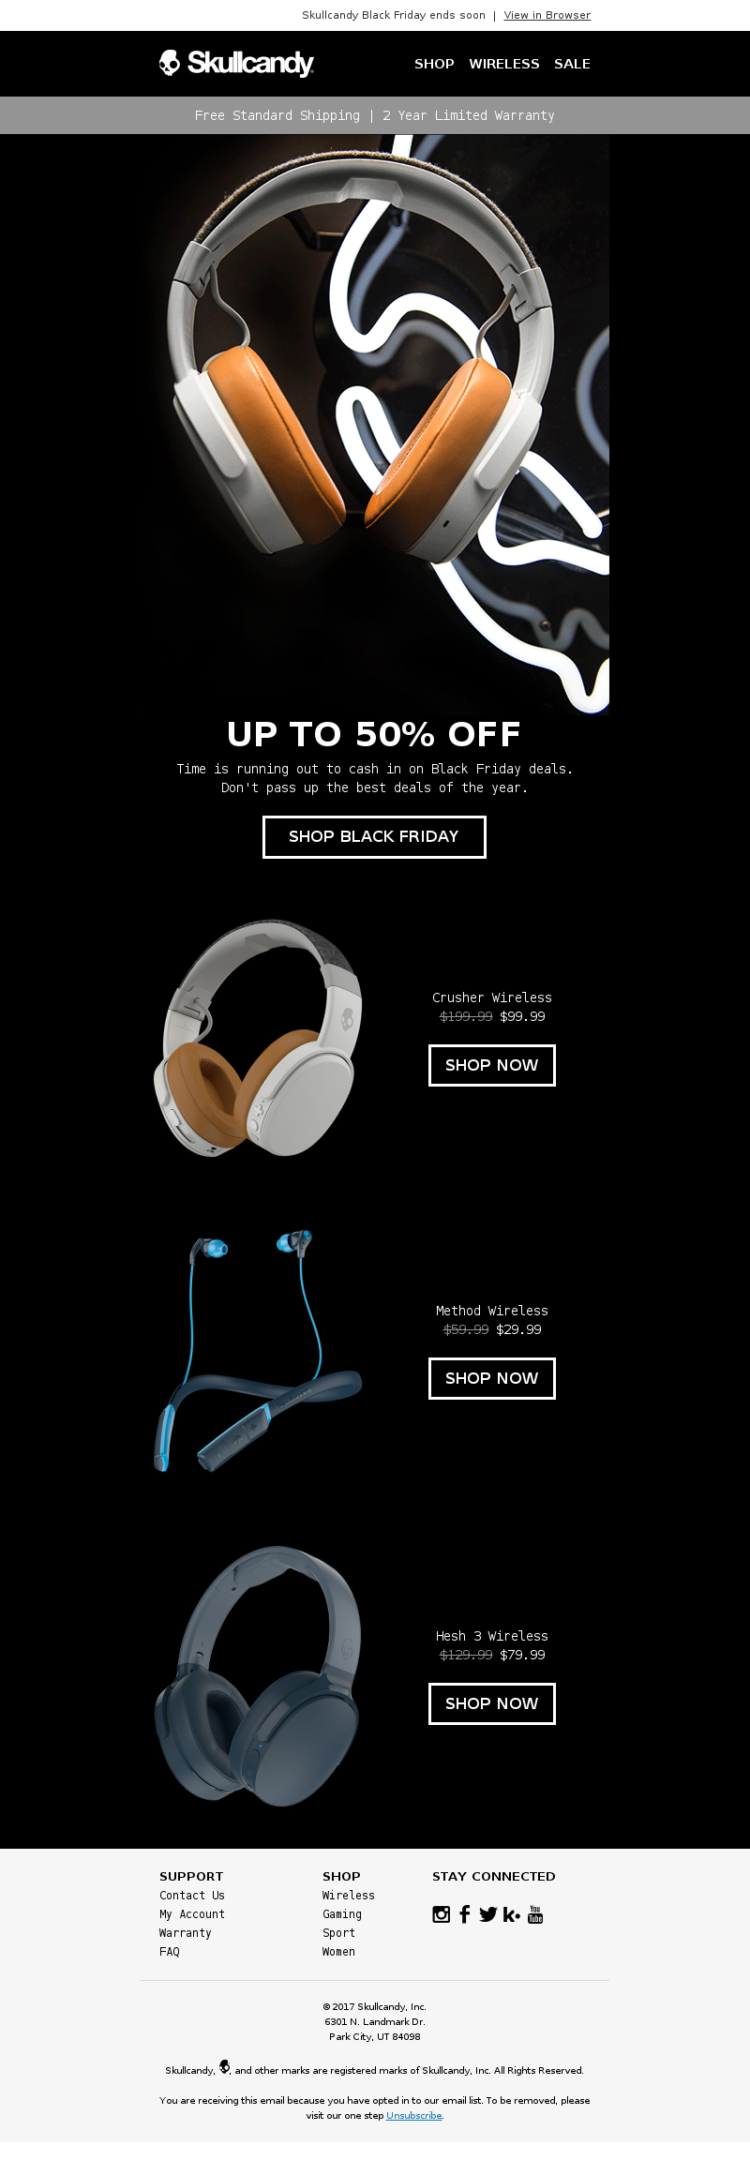 Holiday Email Marketing Skullcandy Black Friday